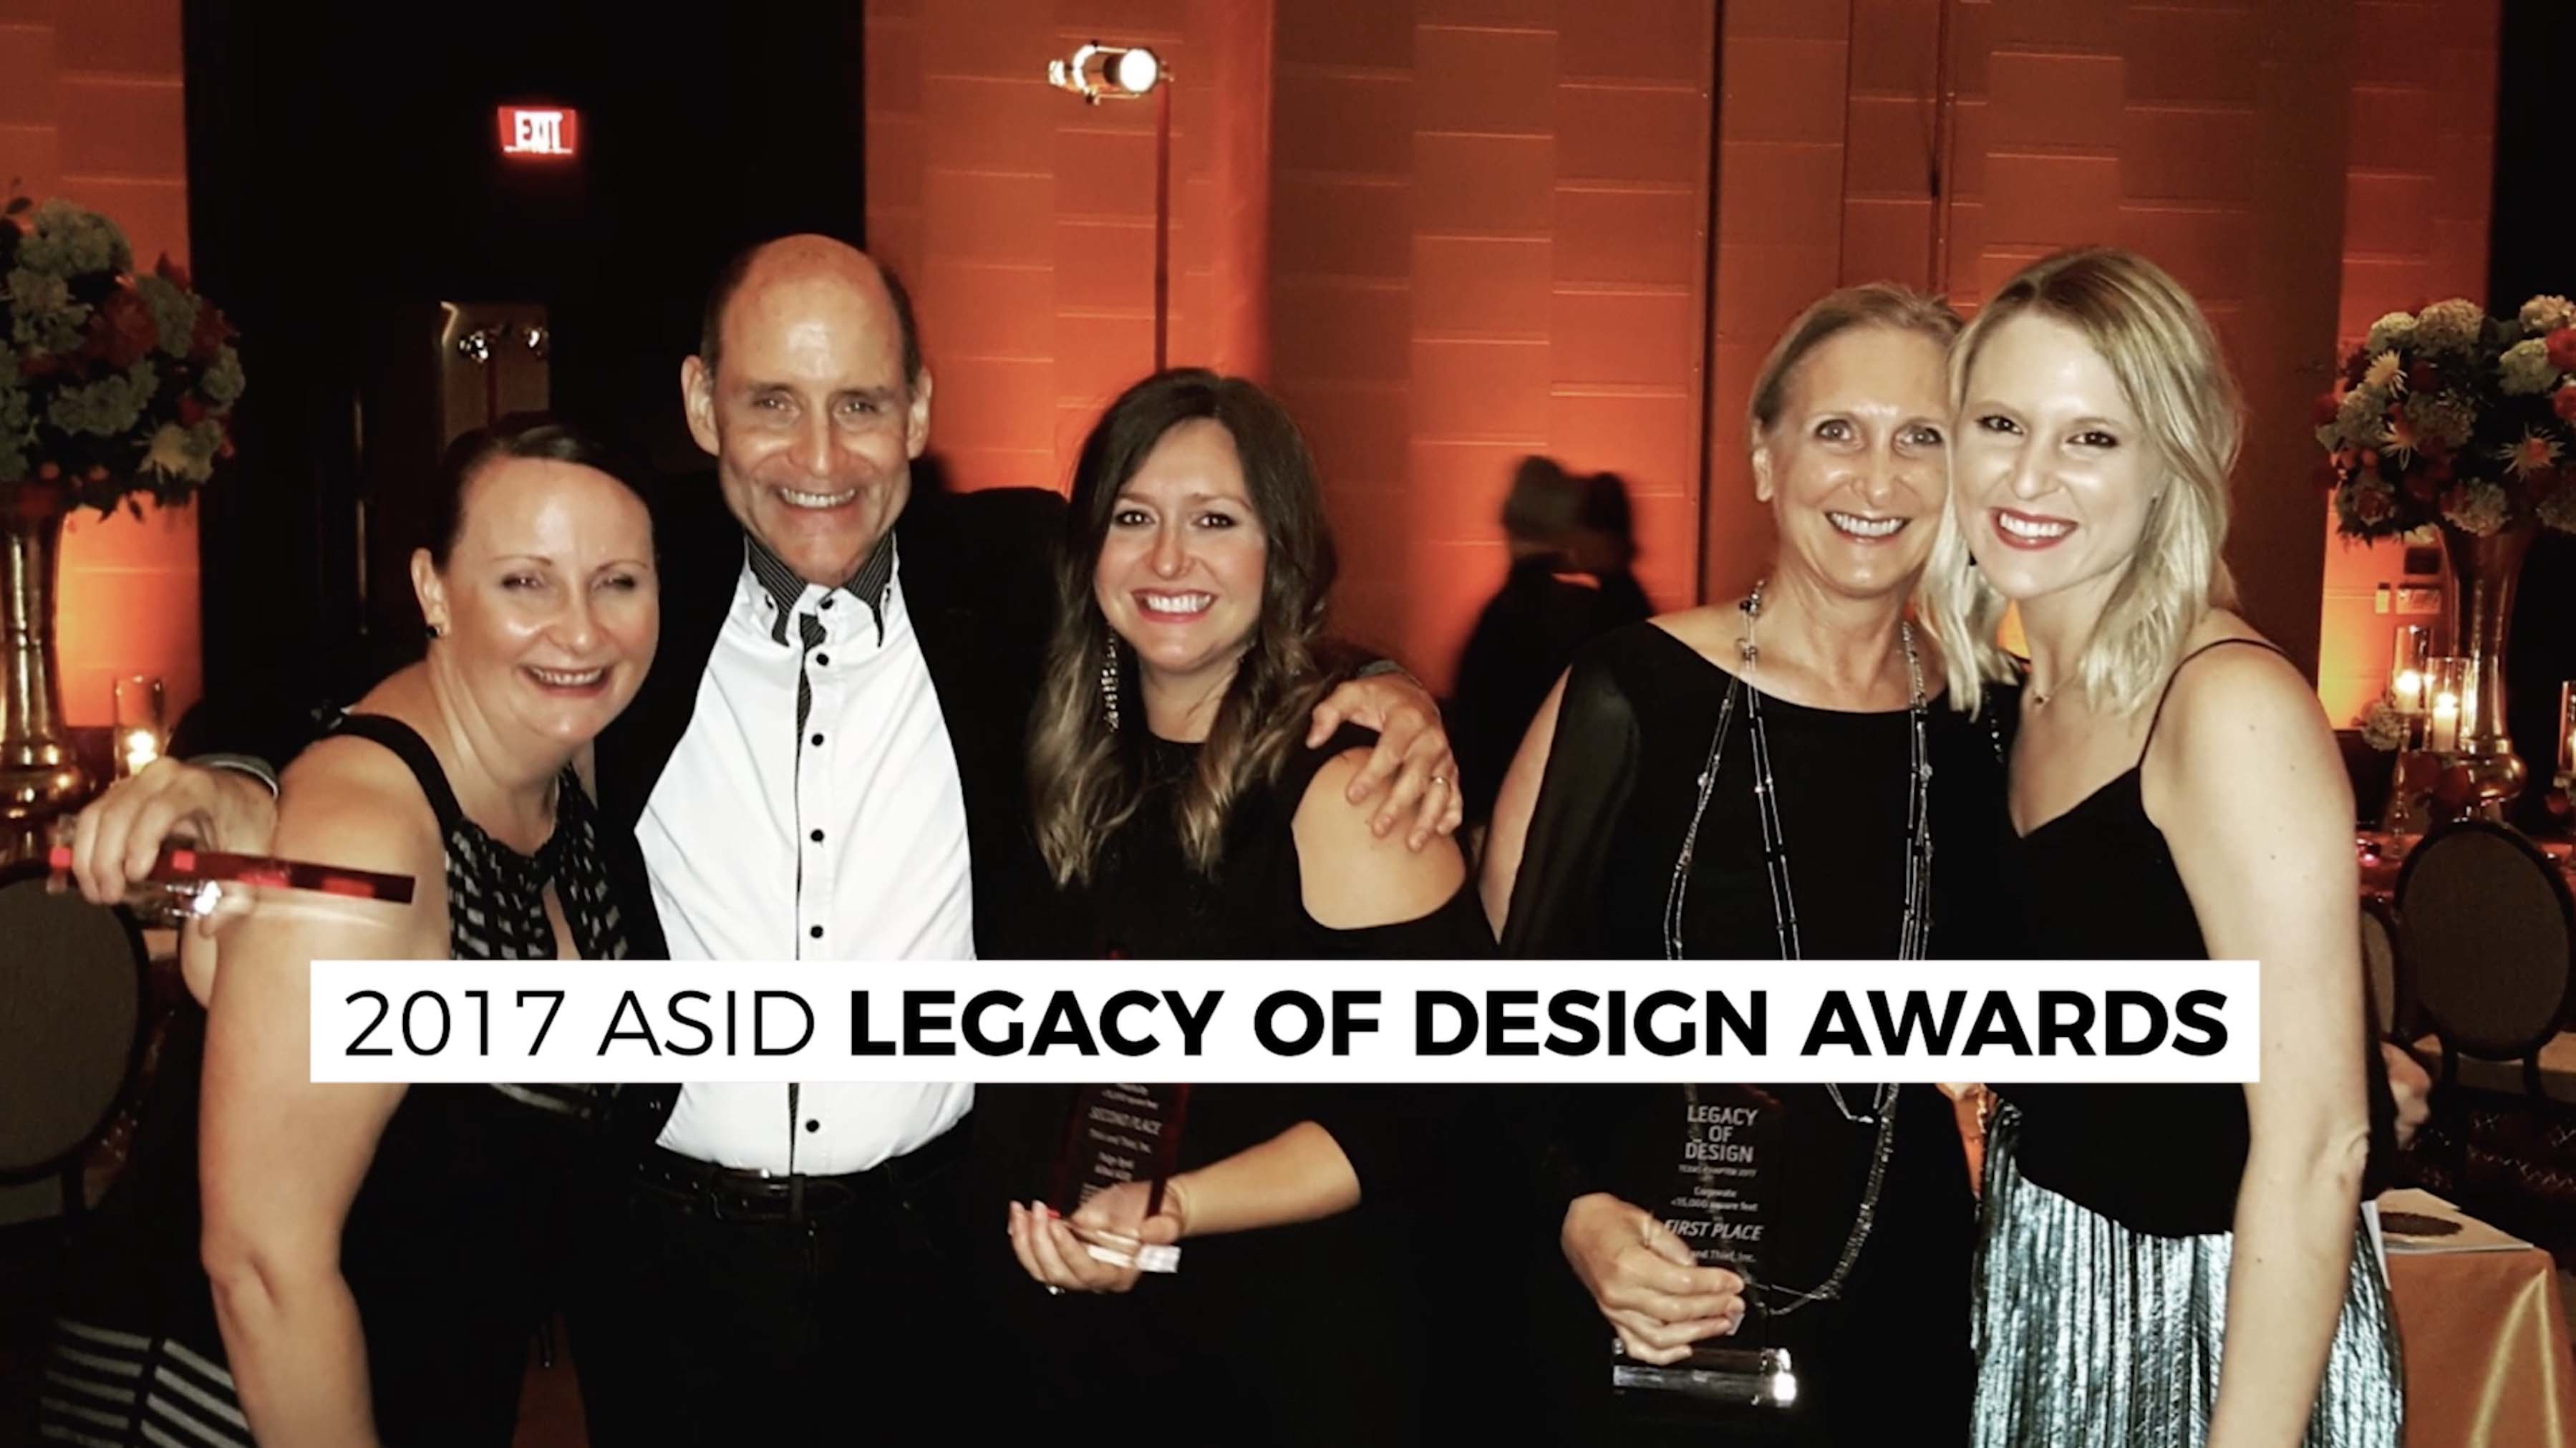 2017 ASID Legacy of Design Awards